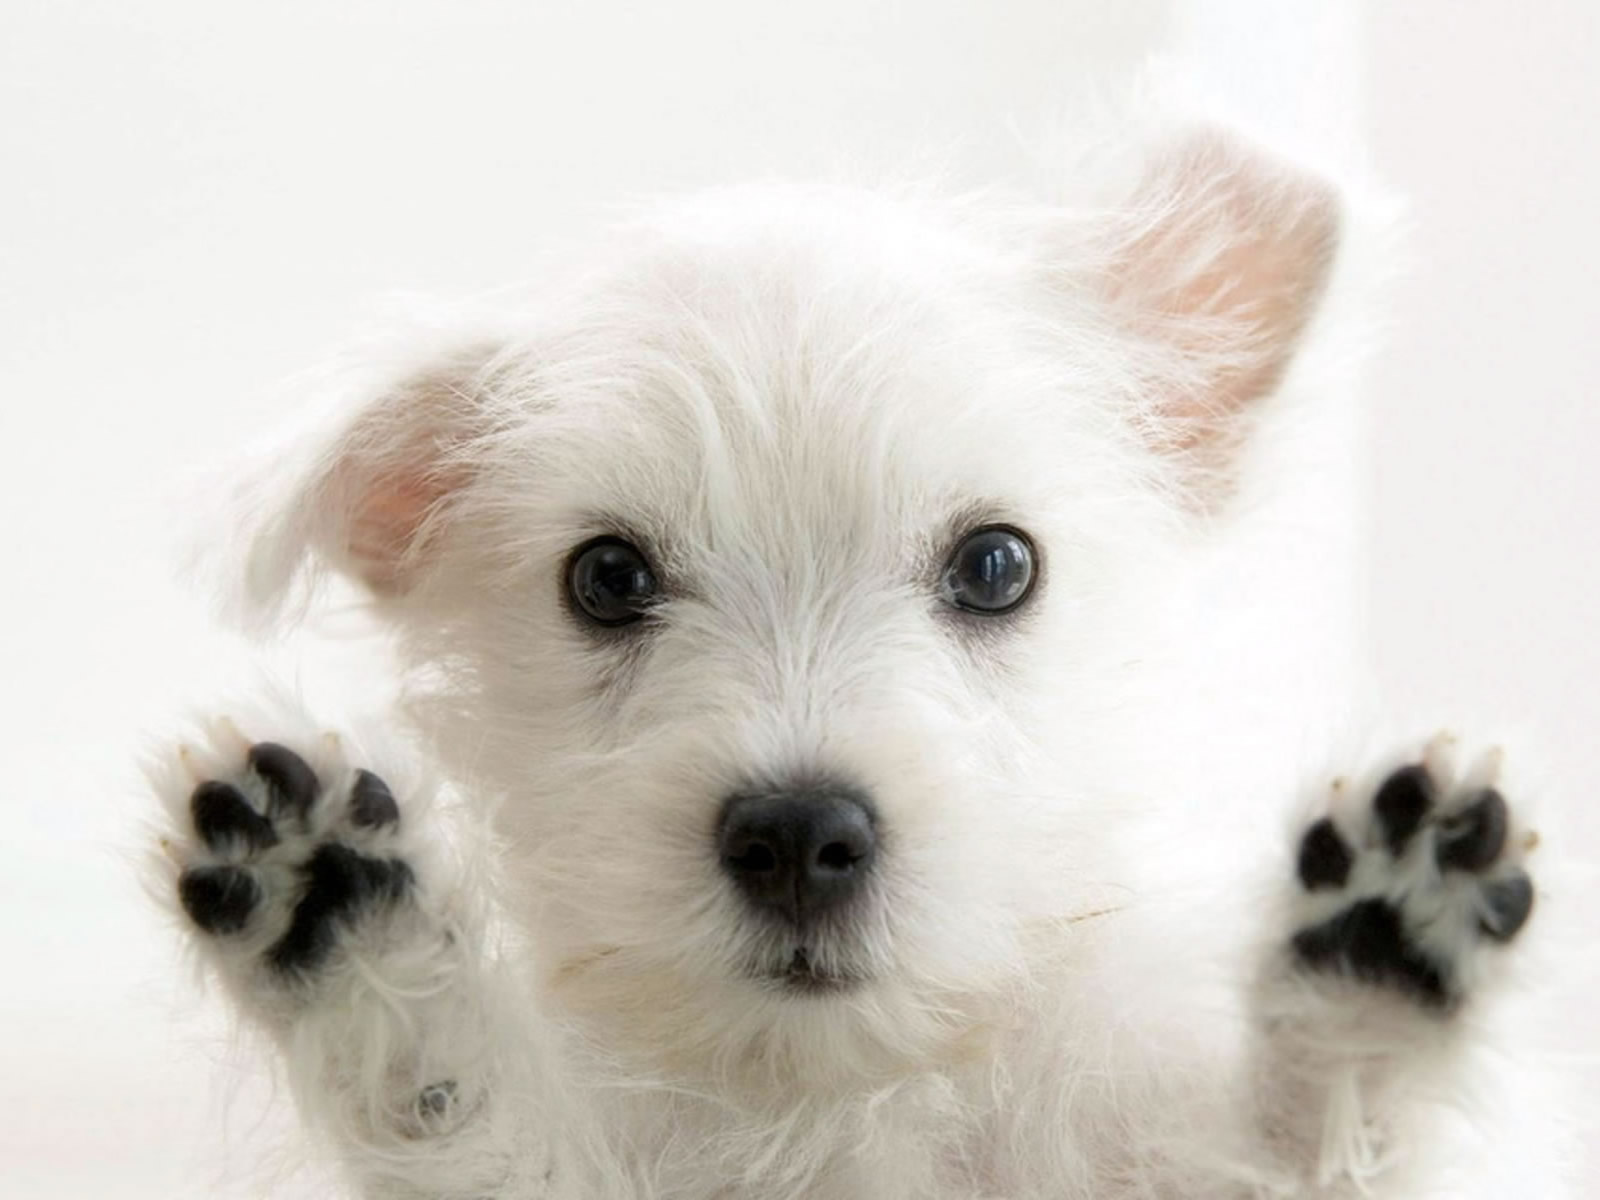 HD WALLPAPERS Puppy Dog HD Wallpapers 1600x1200